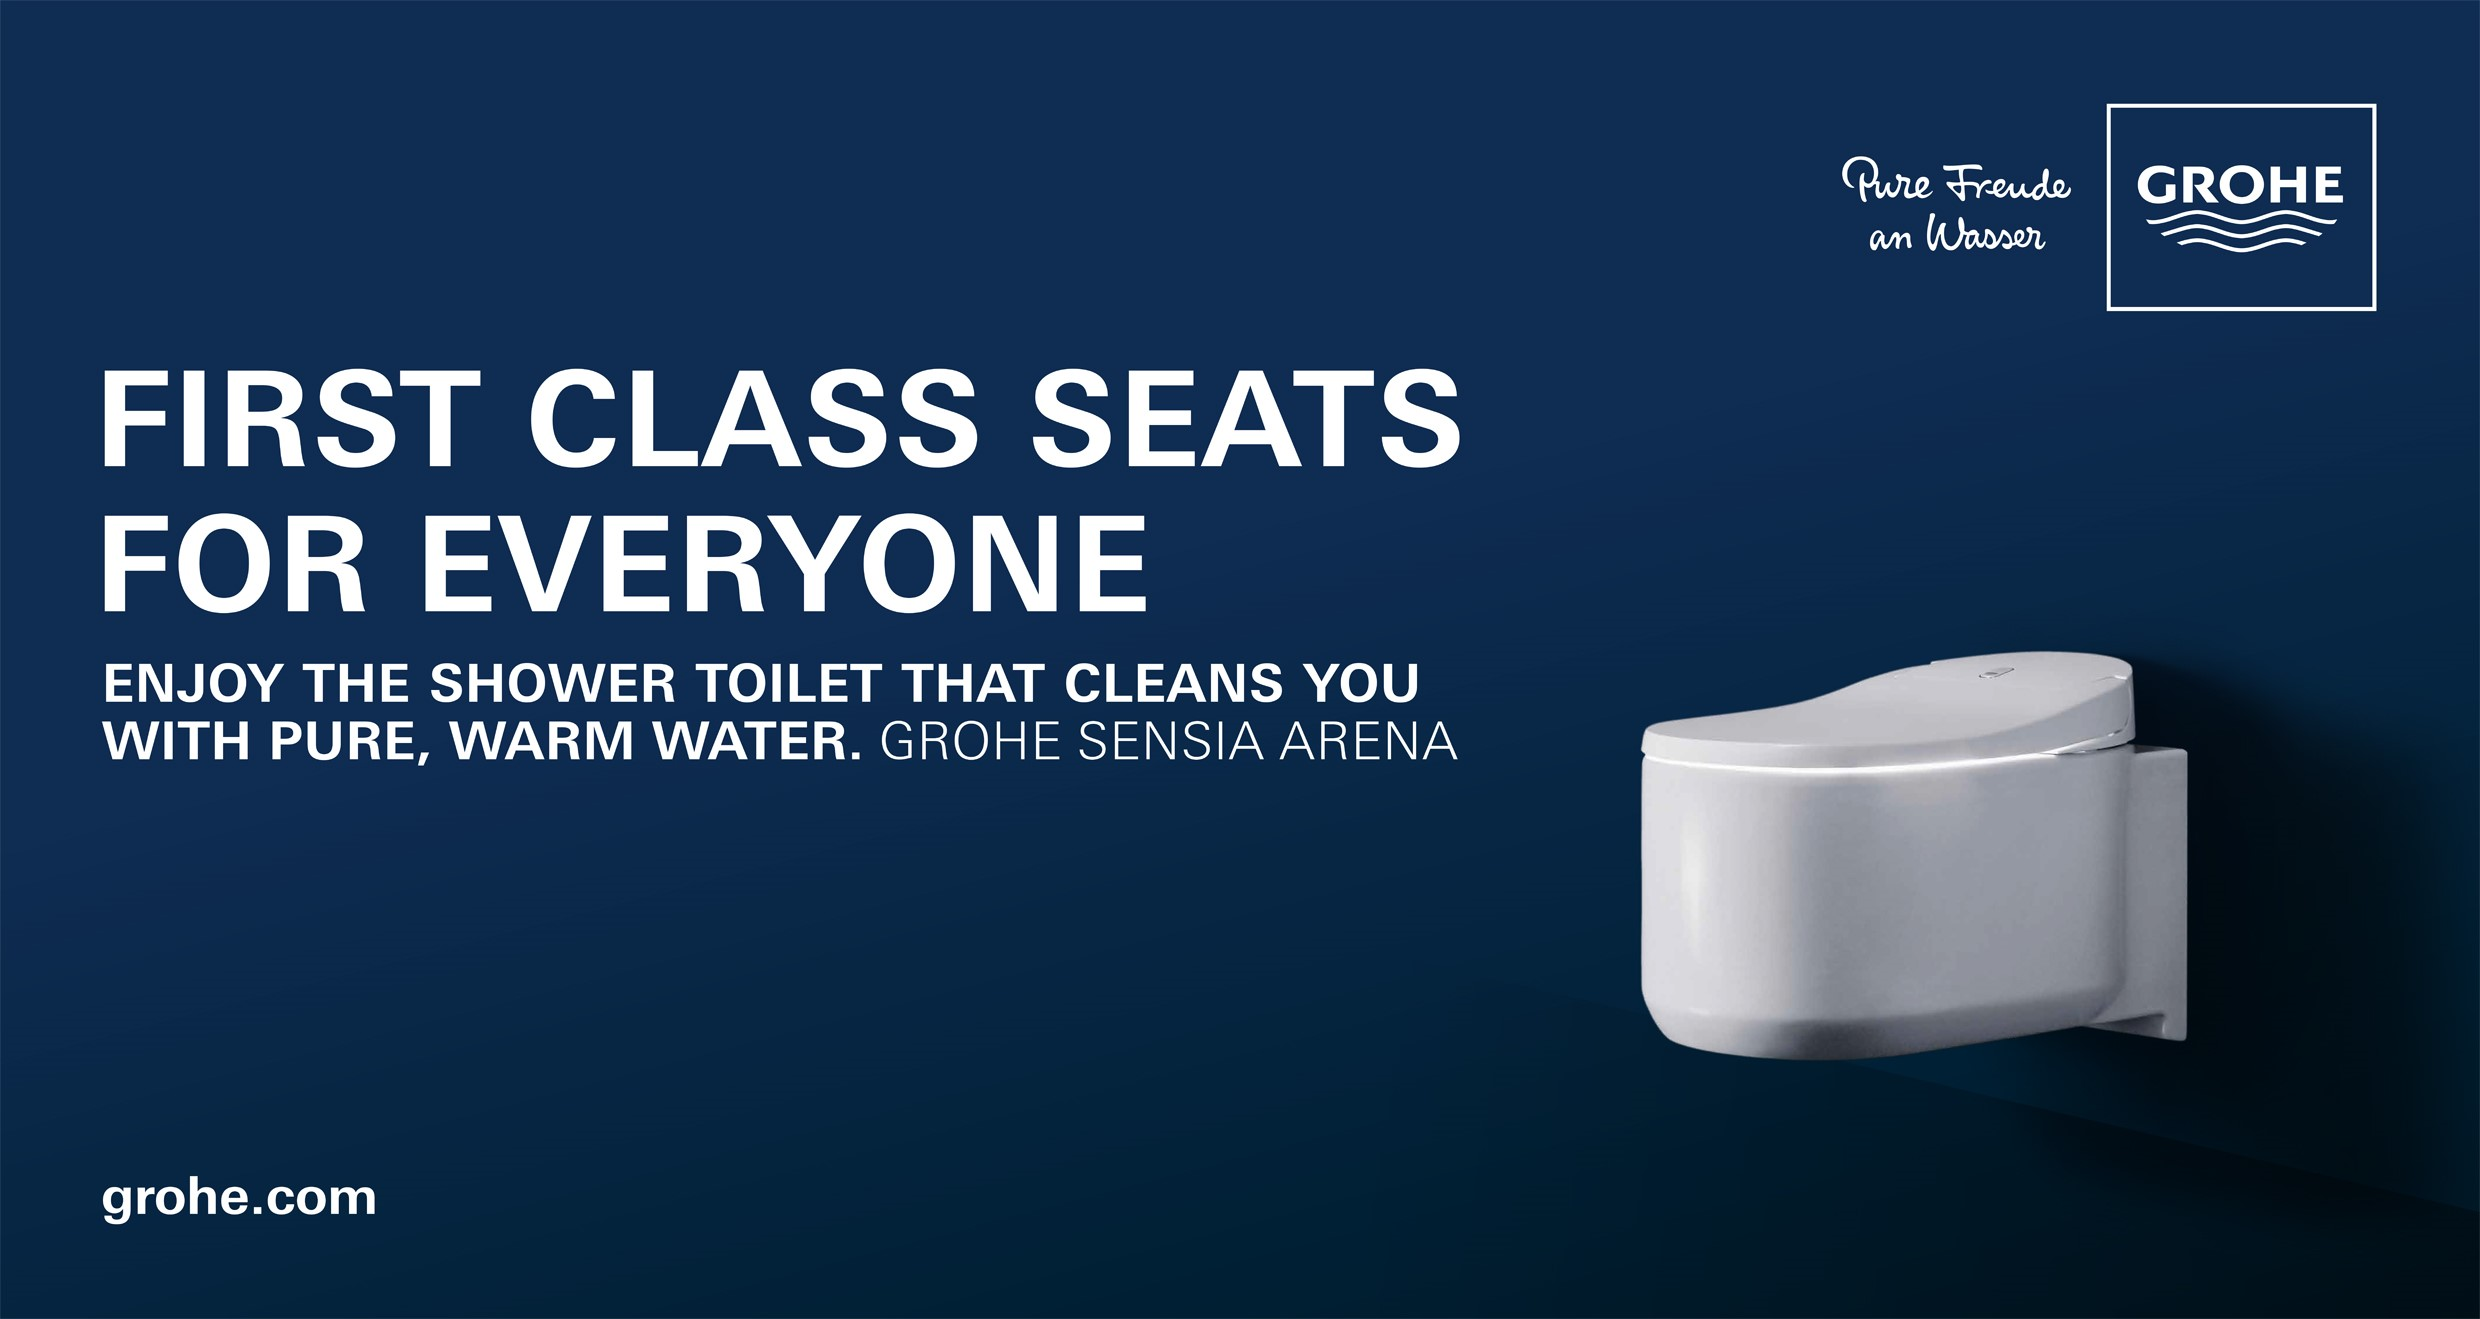 GROHE LAUNCHES SHOWER TOILET CAMPAIGN AT INTERNATIONAL AIRPORTS Tooaleta